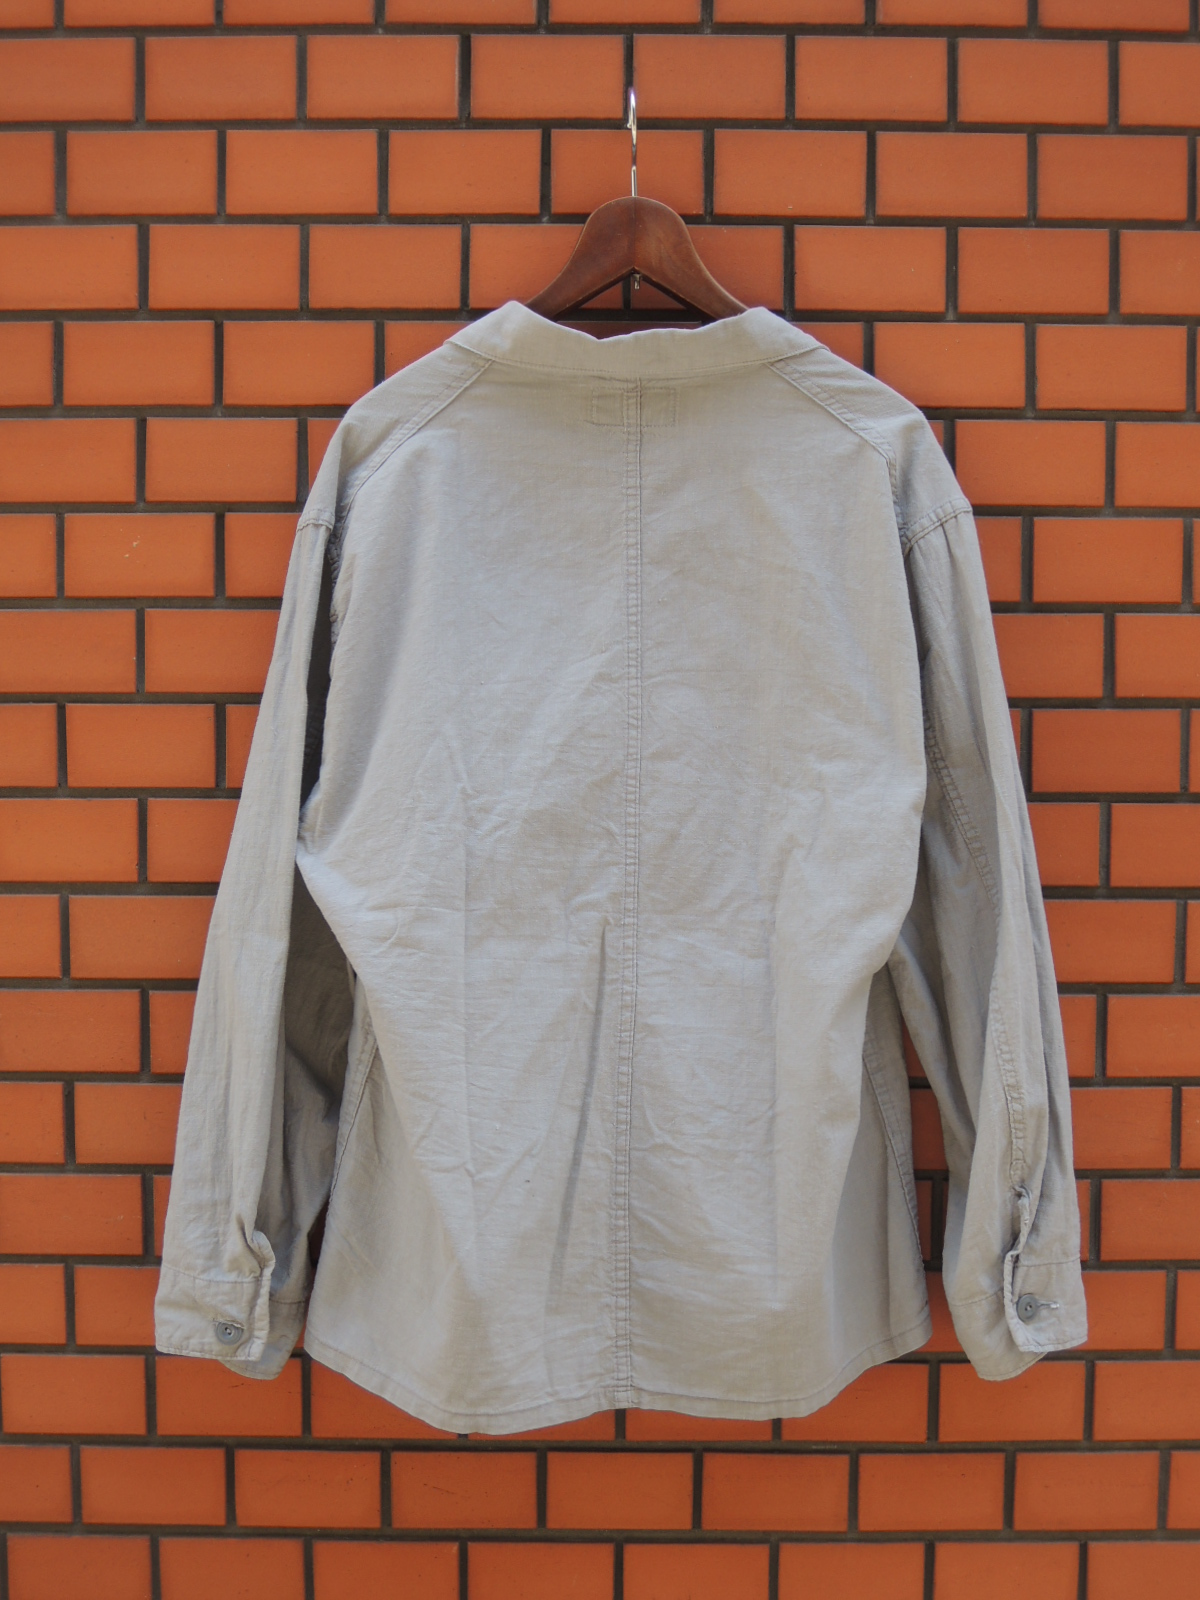 workjacket04.JPG